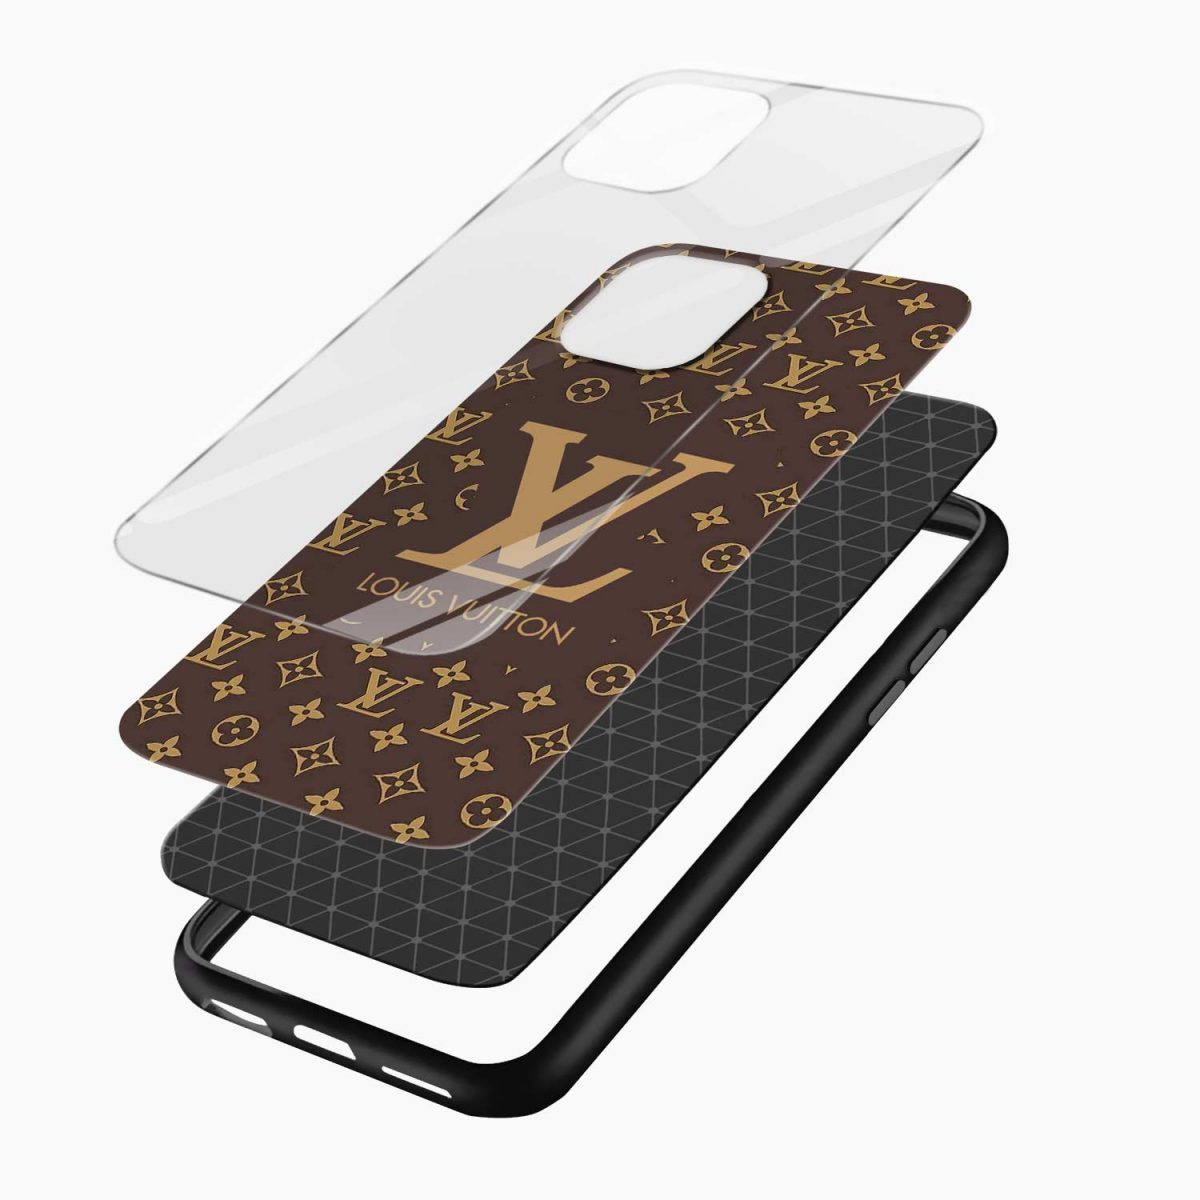 louis vuitton iphone pro back cover layers view